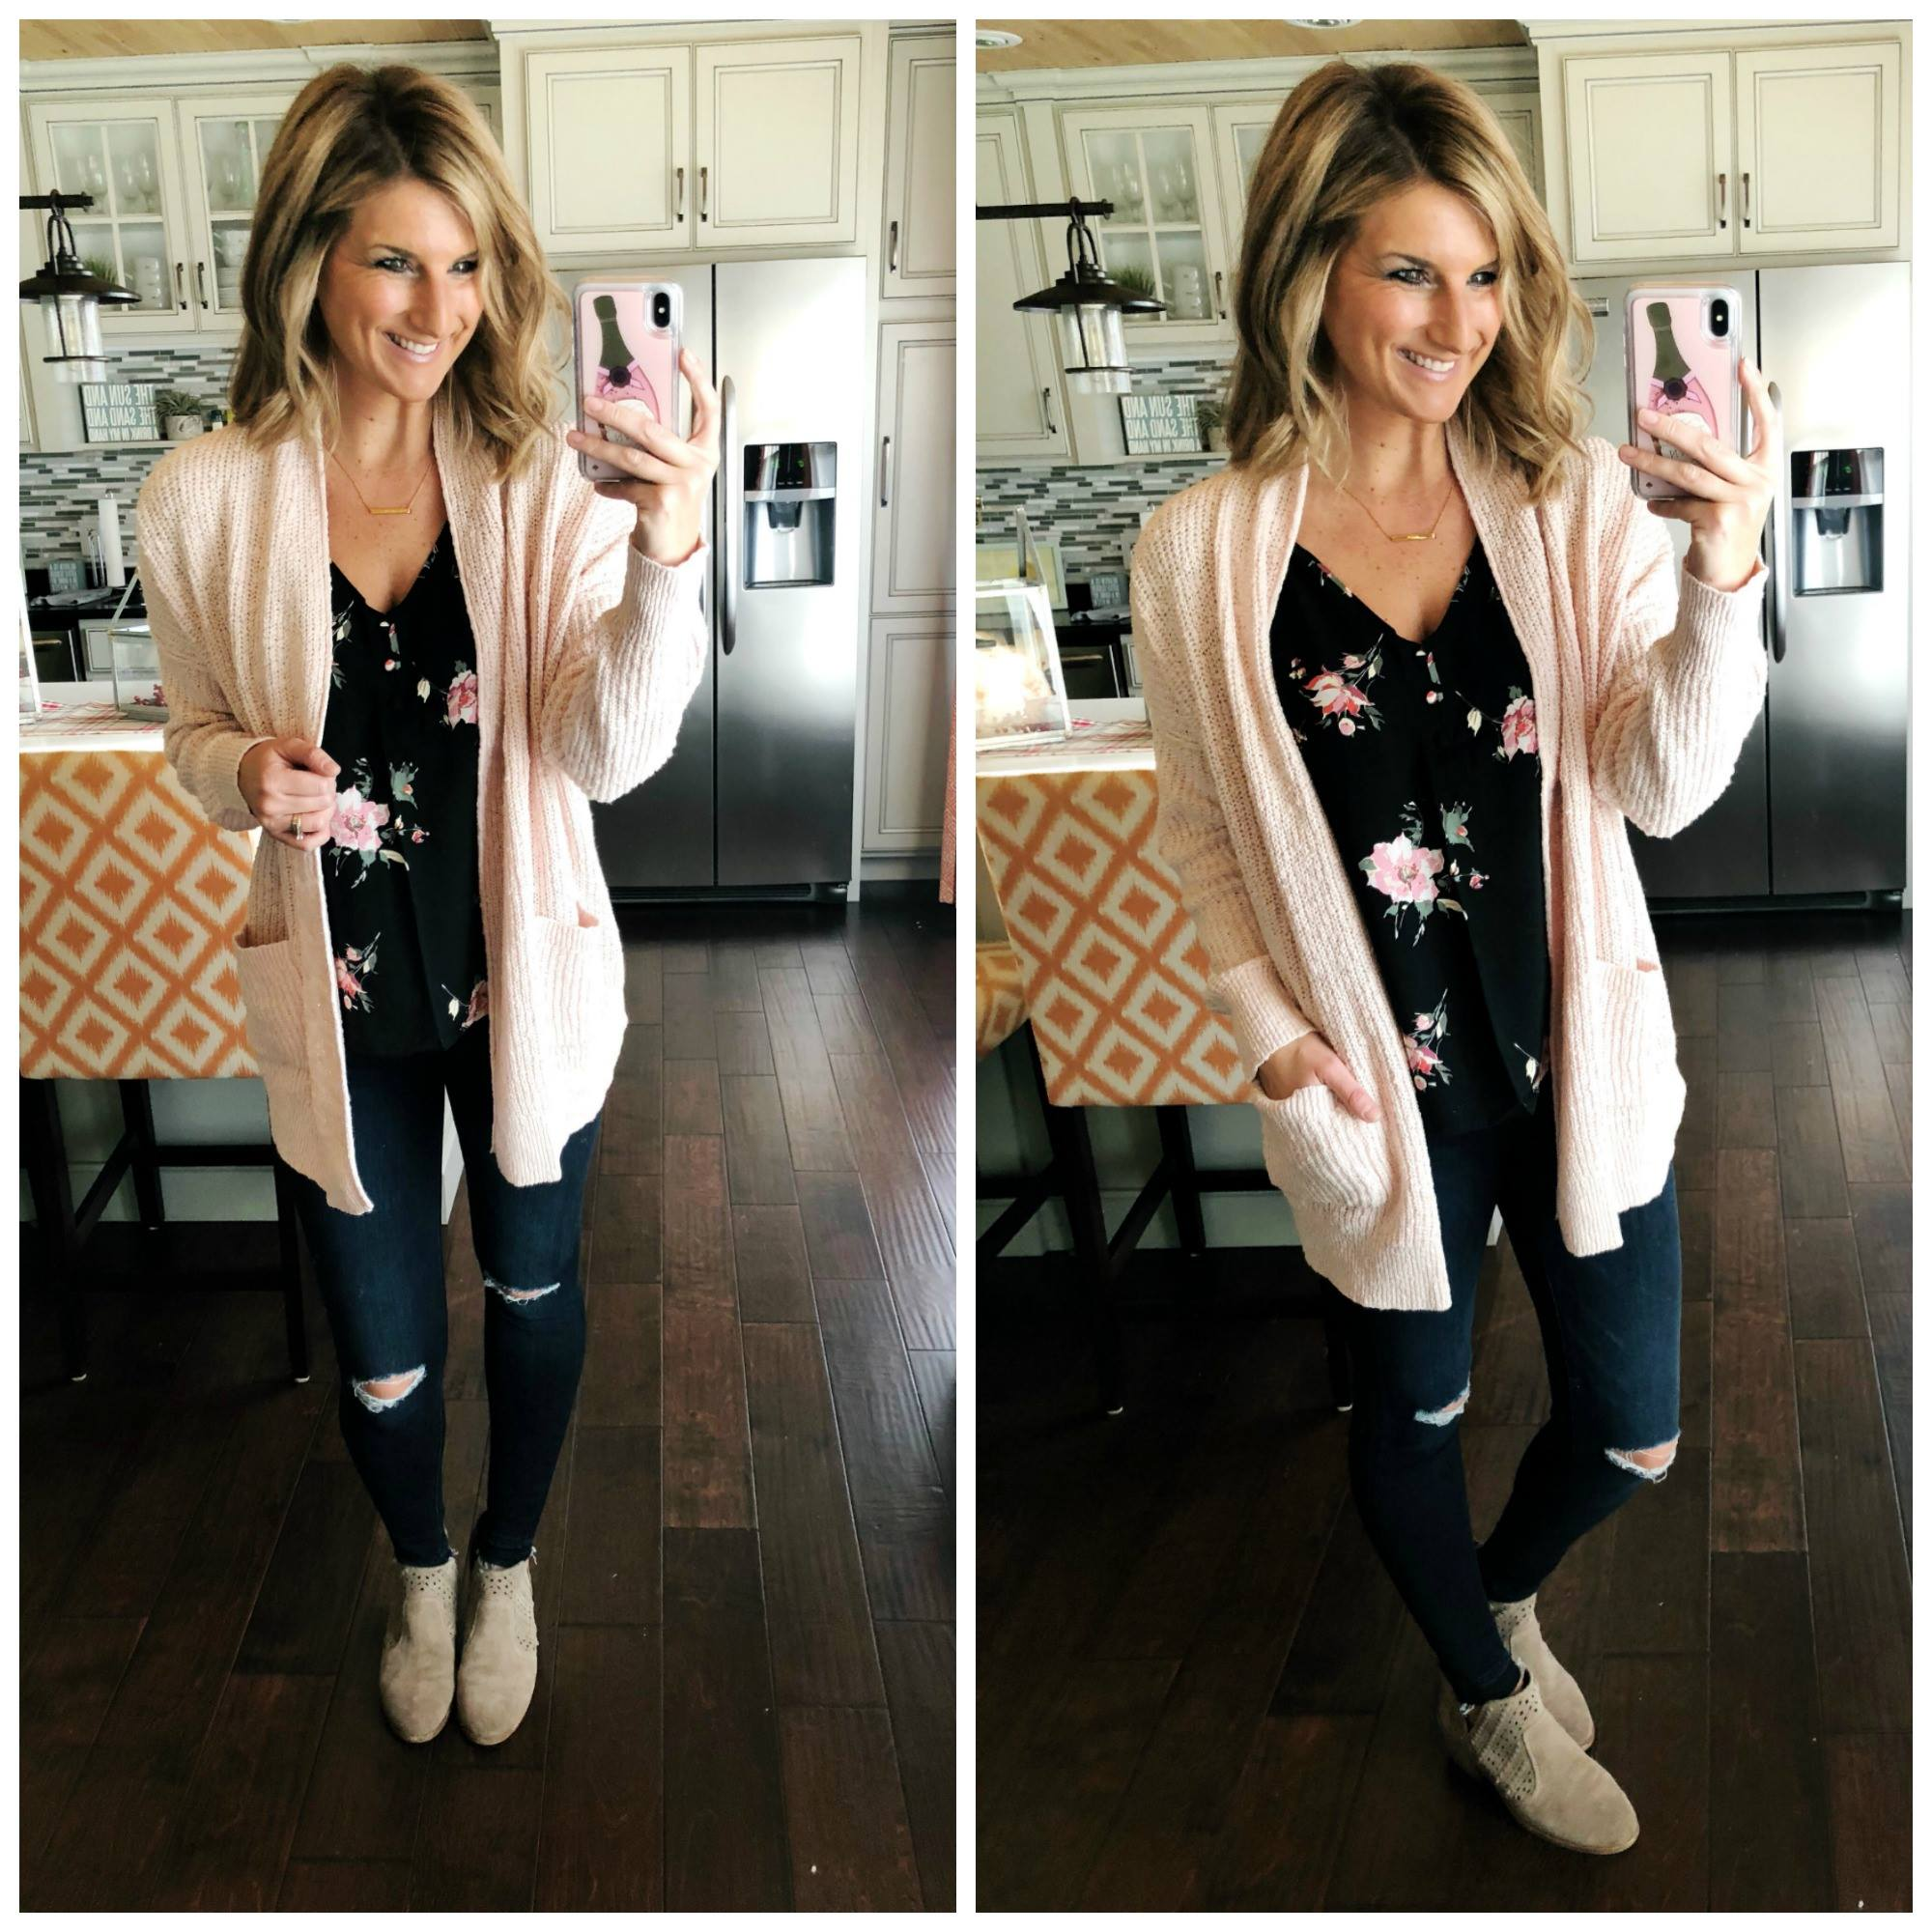 Cute Spring Outfit // Floral Top + Distressed Jegging + Blush Cardigan + Booties